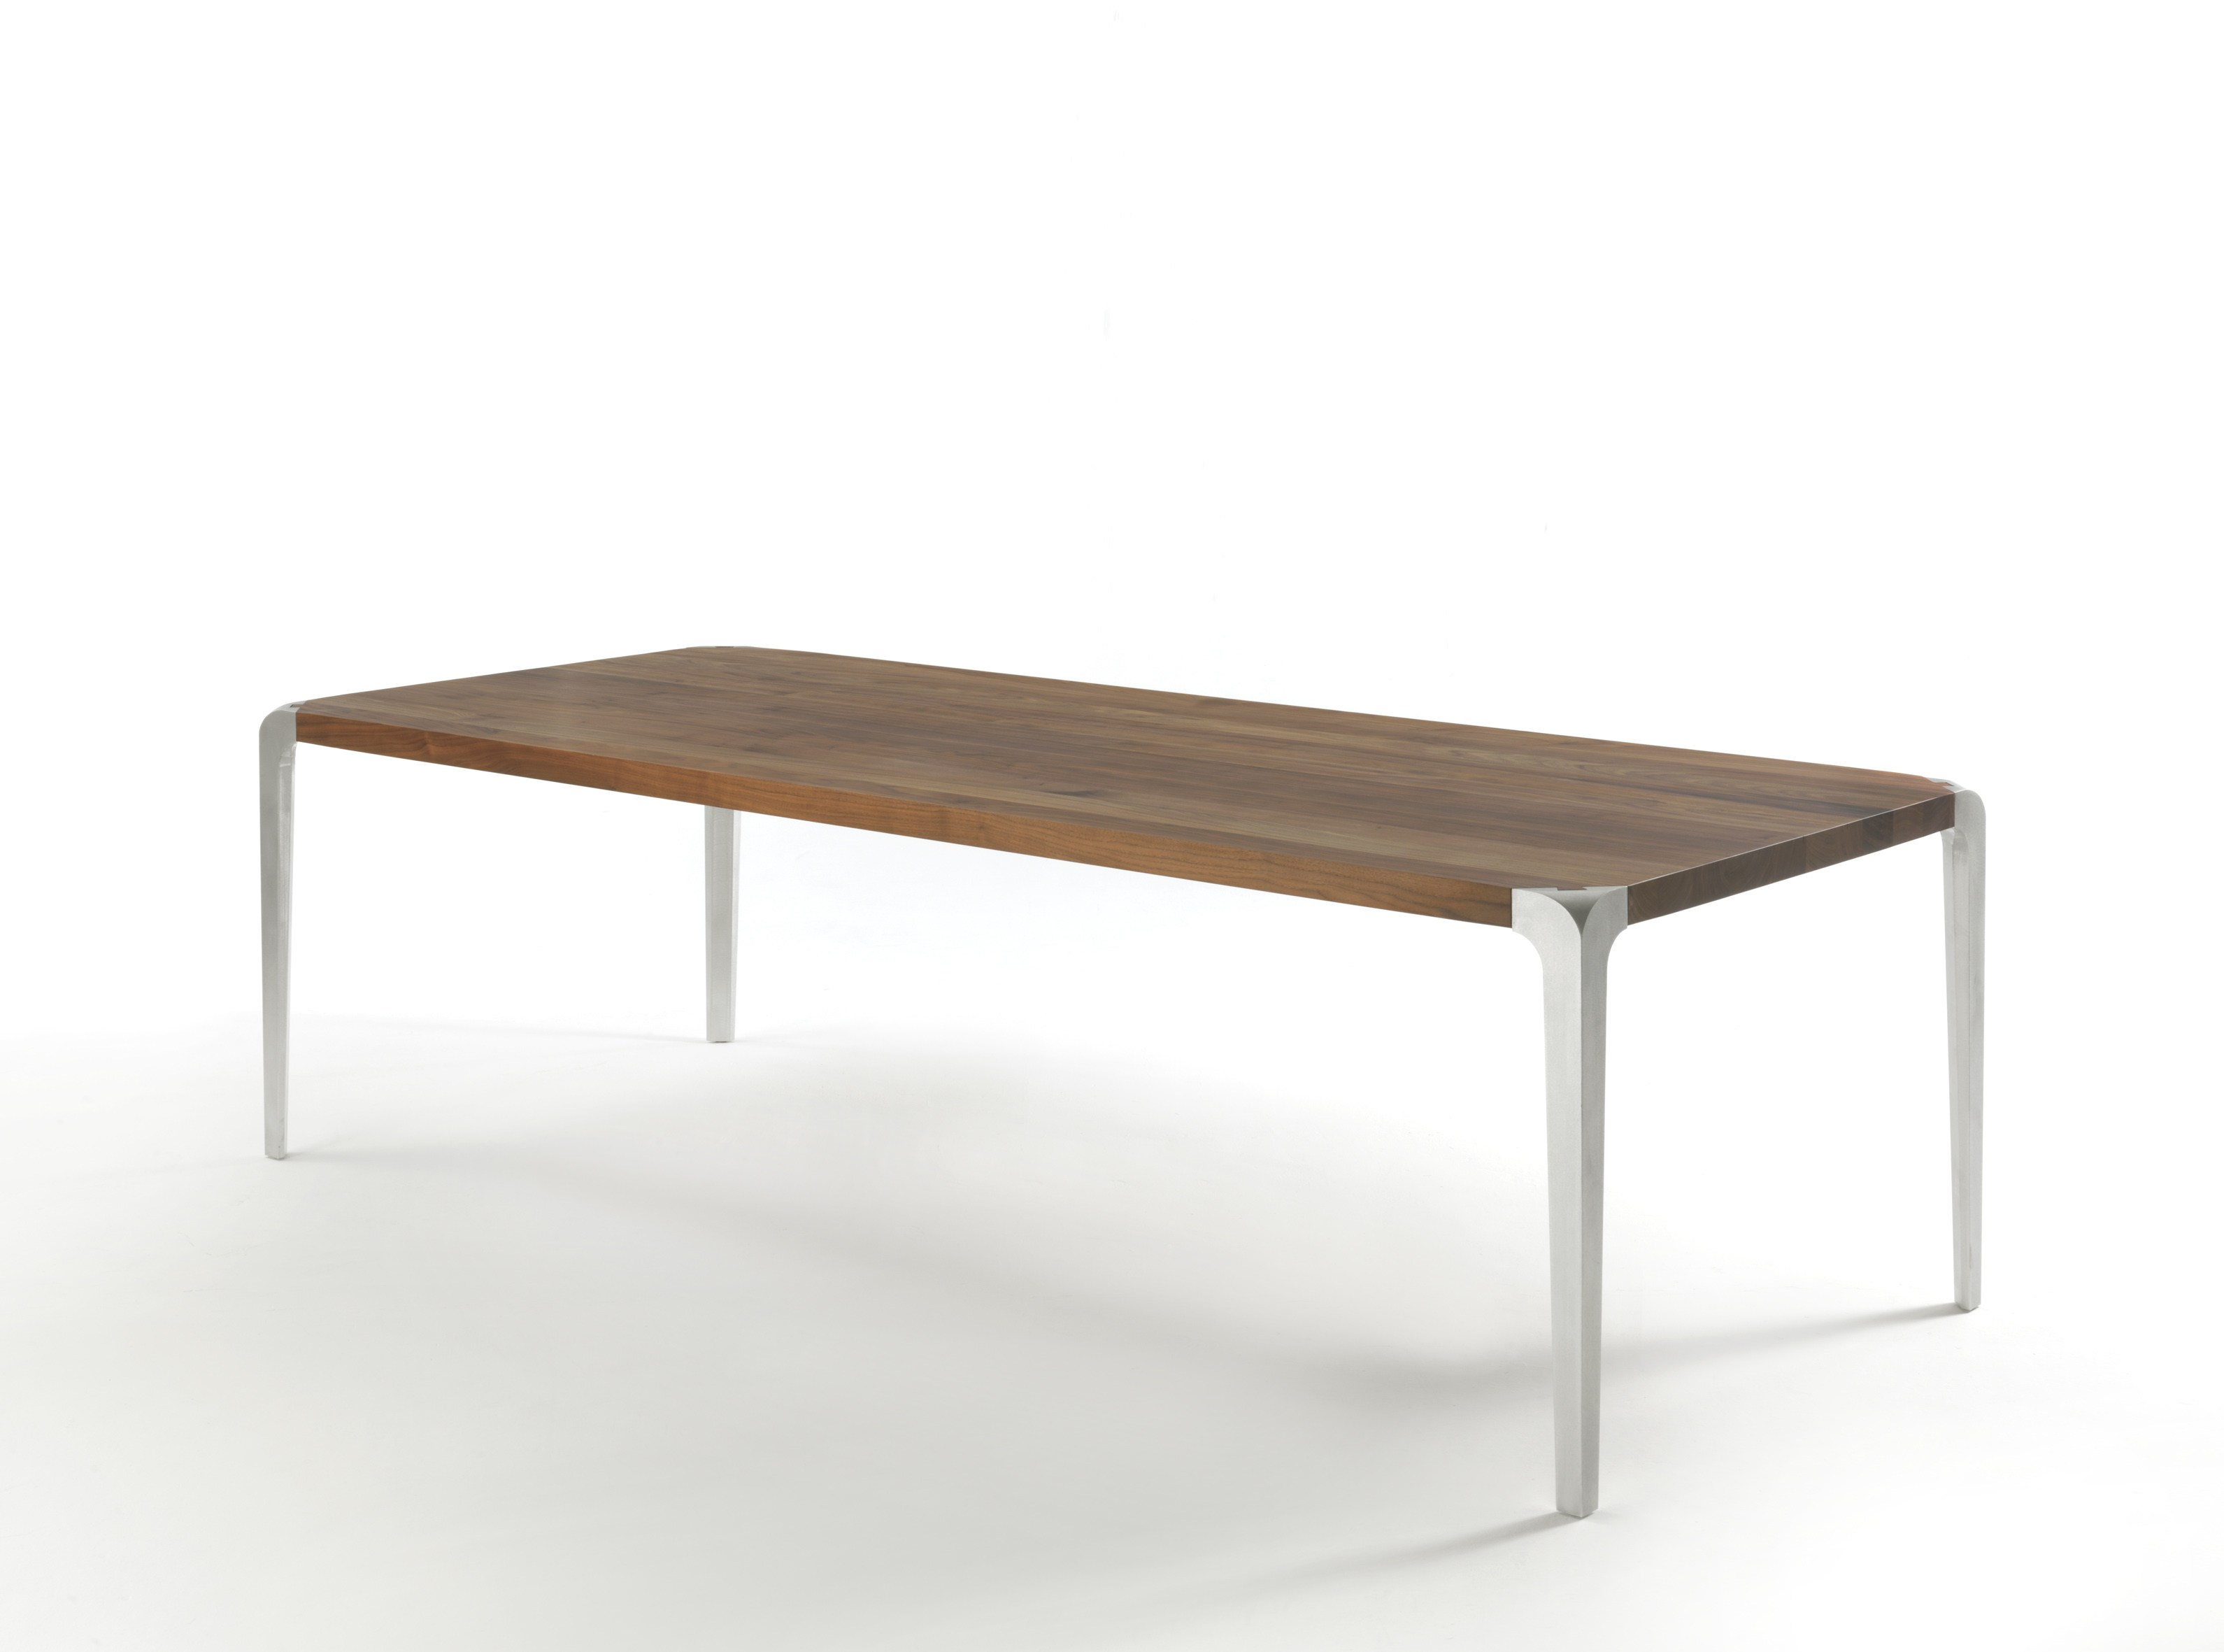 Rectangular dining table sleek 2013 by riva 1920 design for Sleek dining room tables